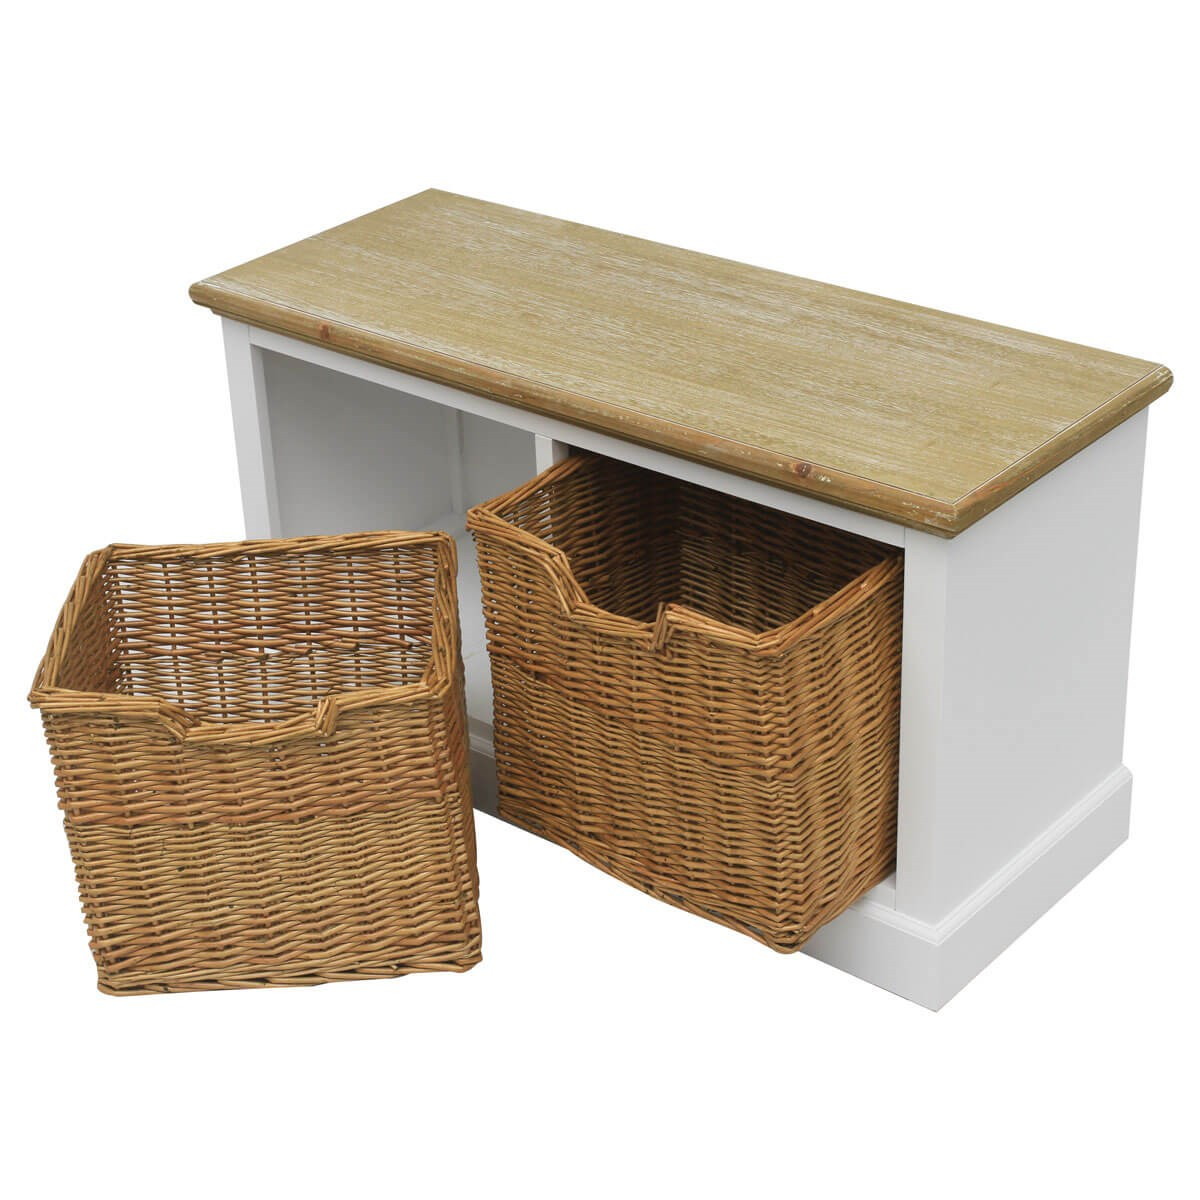 Chic Rattan Coffee Table: Shabby Chic Unit With Wicker Storage Baskets